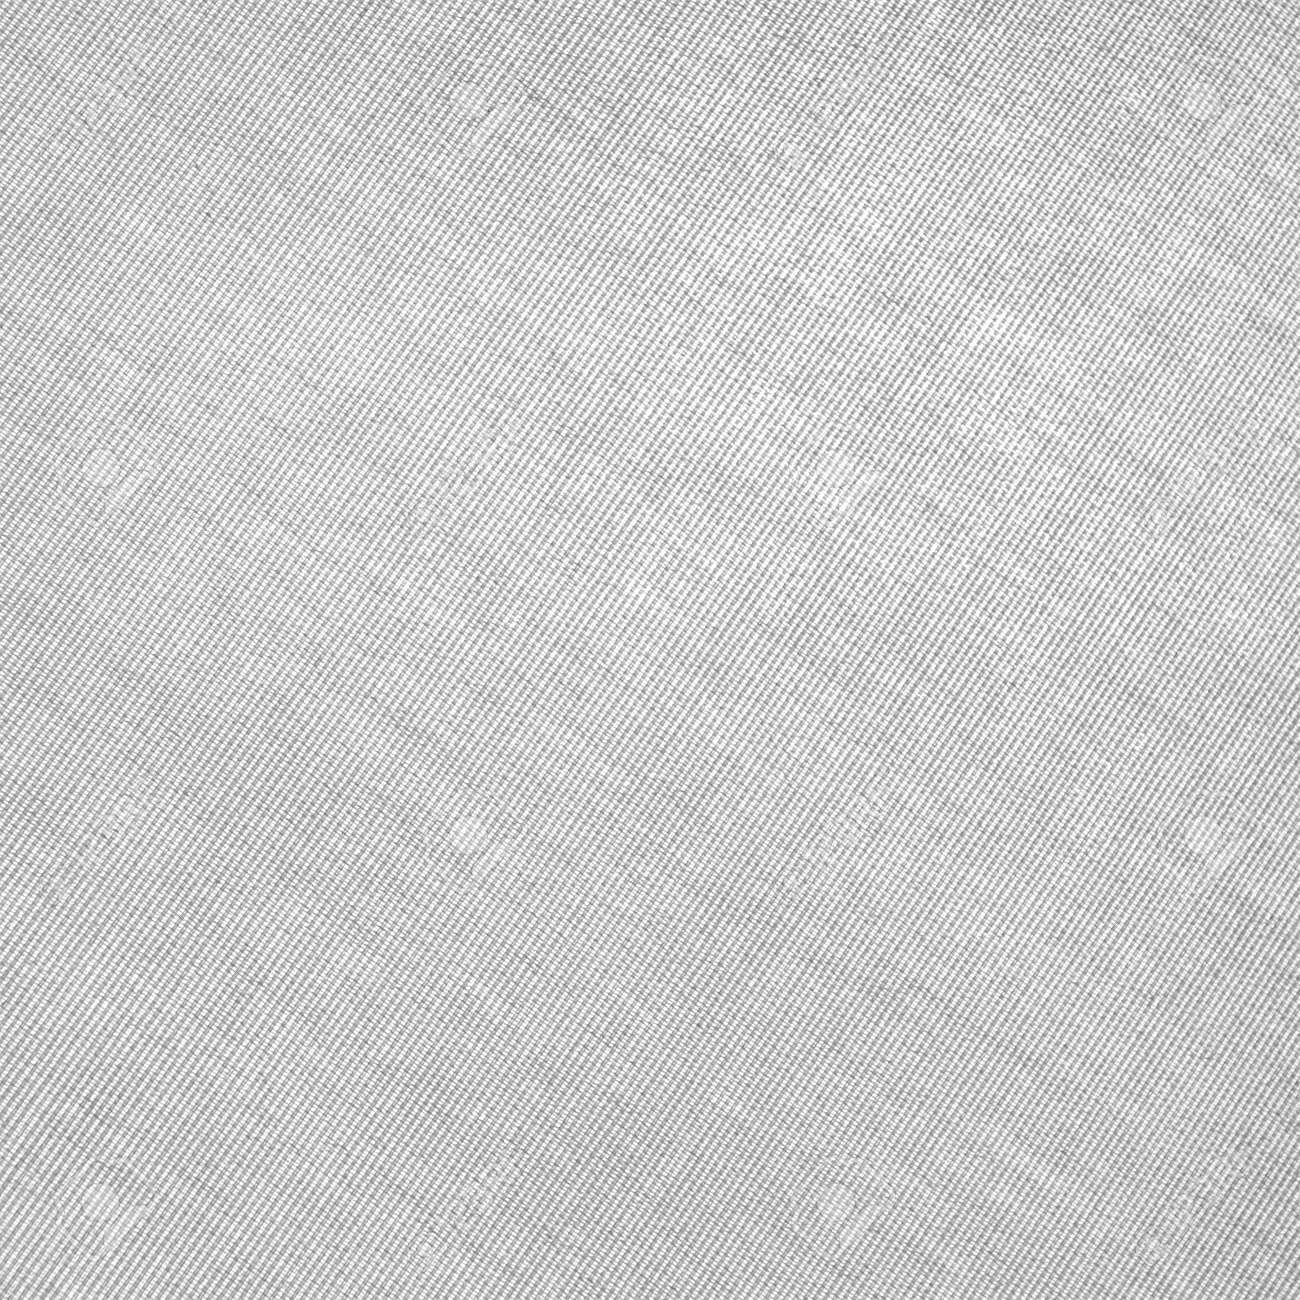 bright canvas texture background with delicate striped pattern - 15378970